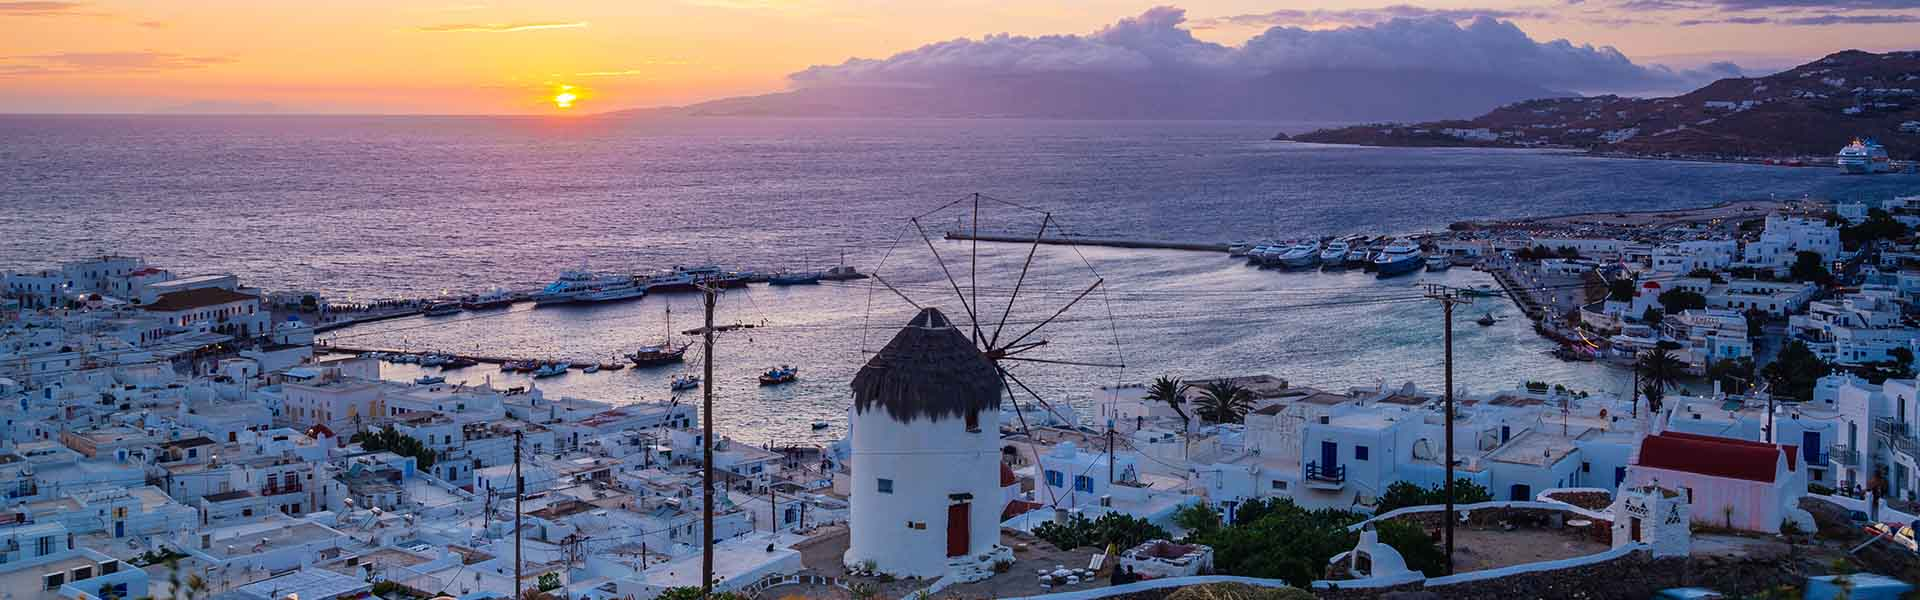 Why Mykonos has been setting trends and stealing hearts